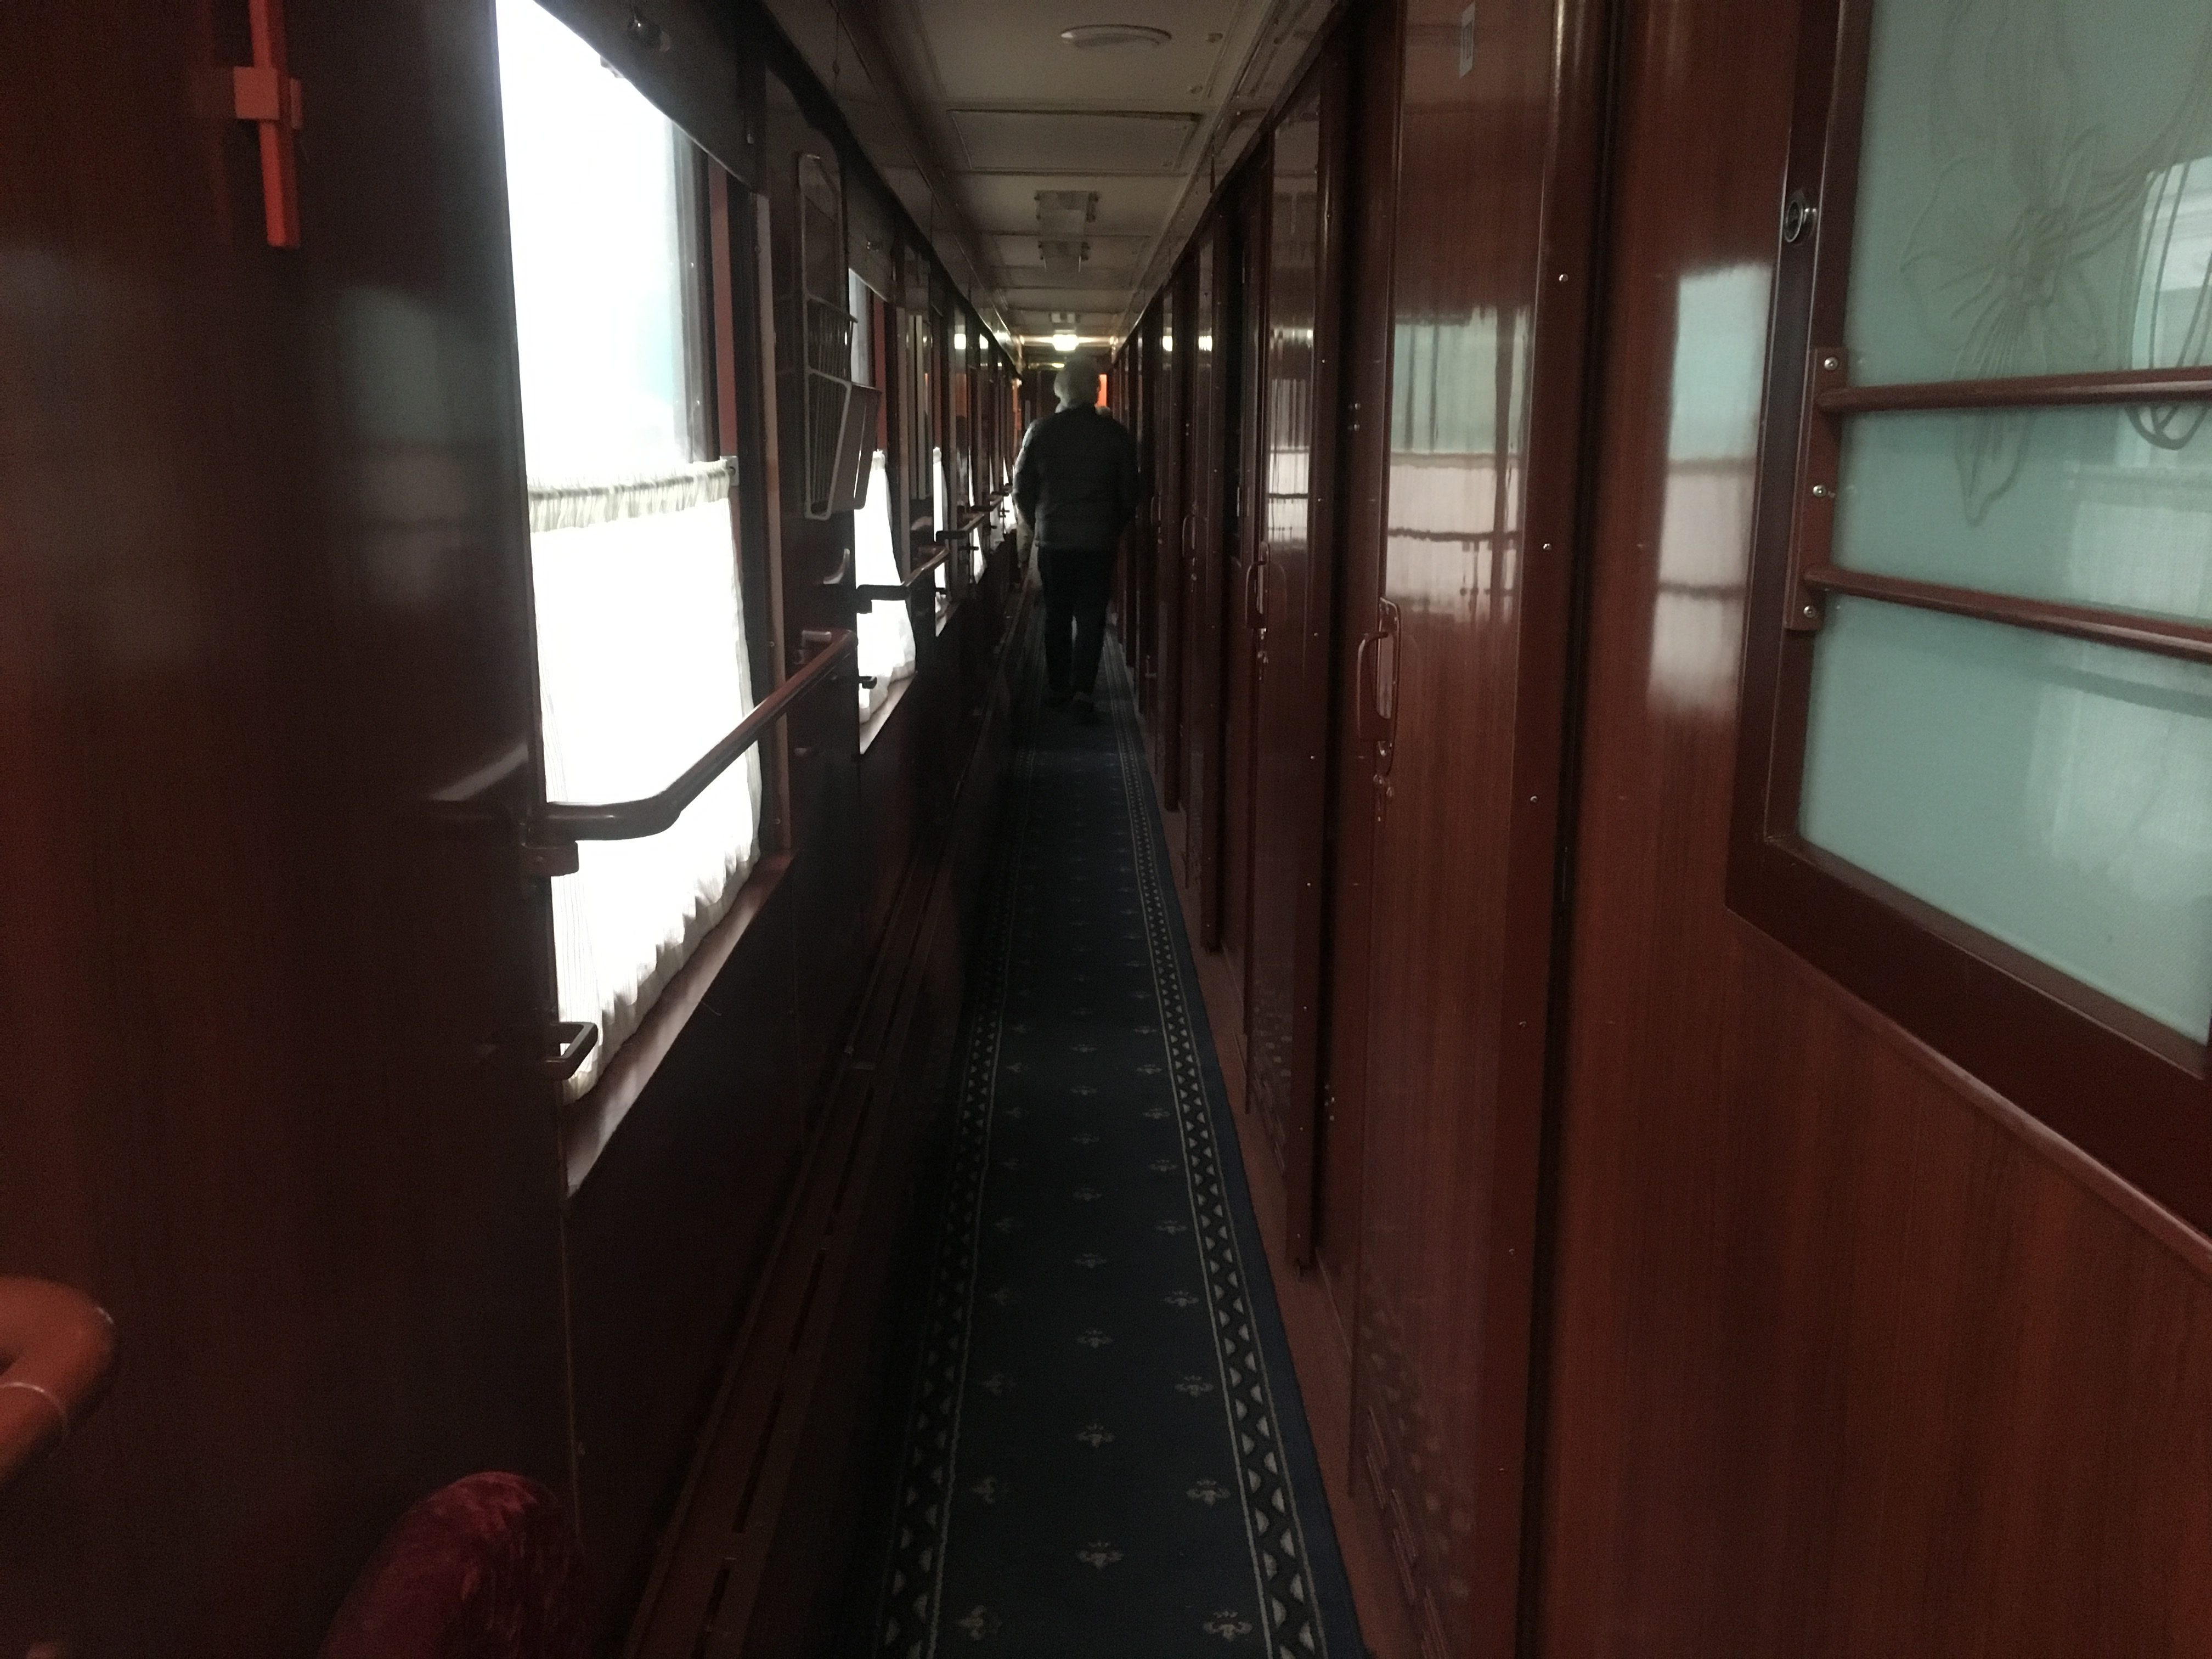 Down the first-class corridor at Omsk